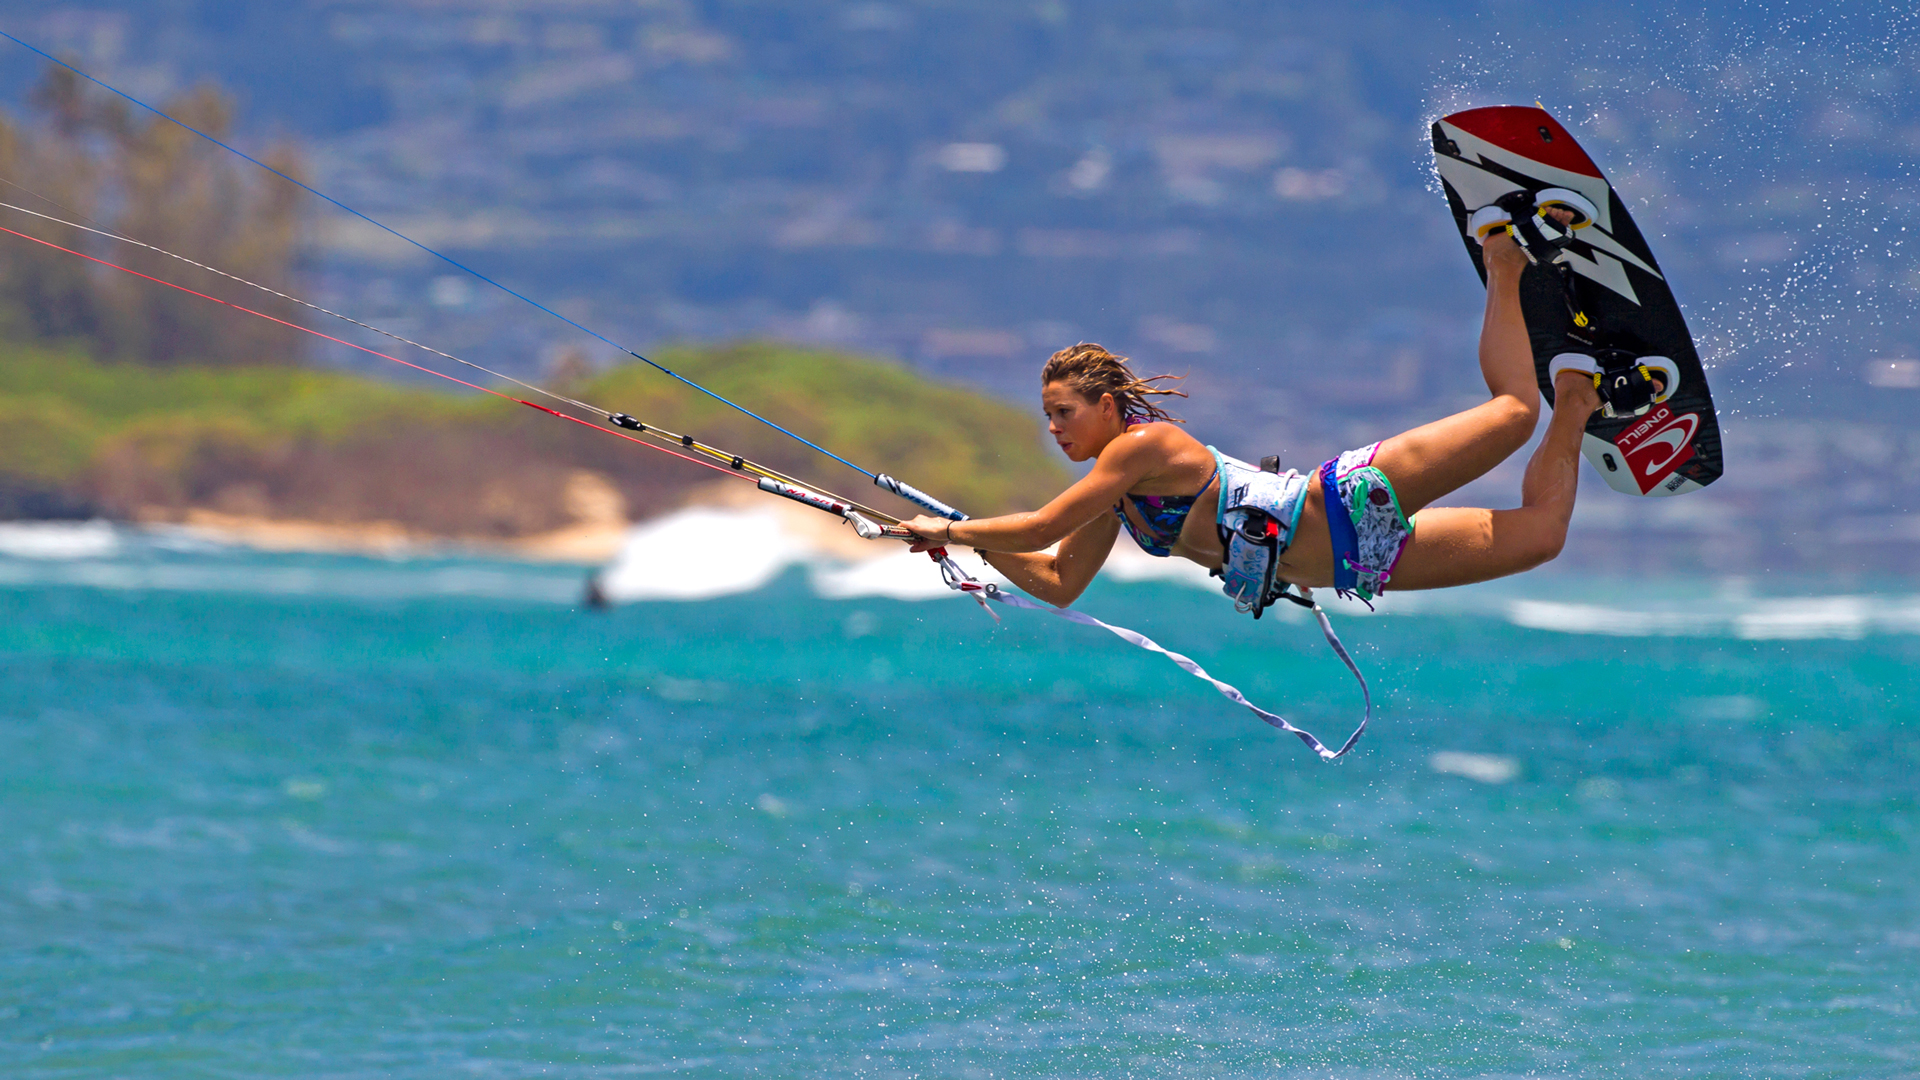 Kitesurfing Wallpaper Gear Kite Board Logo Pictures Miami Lessons